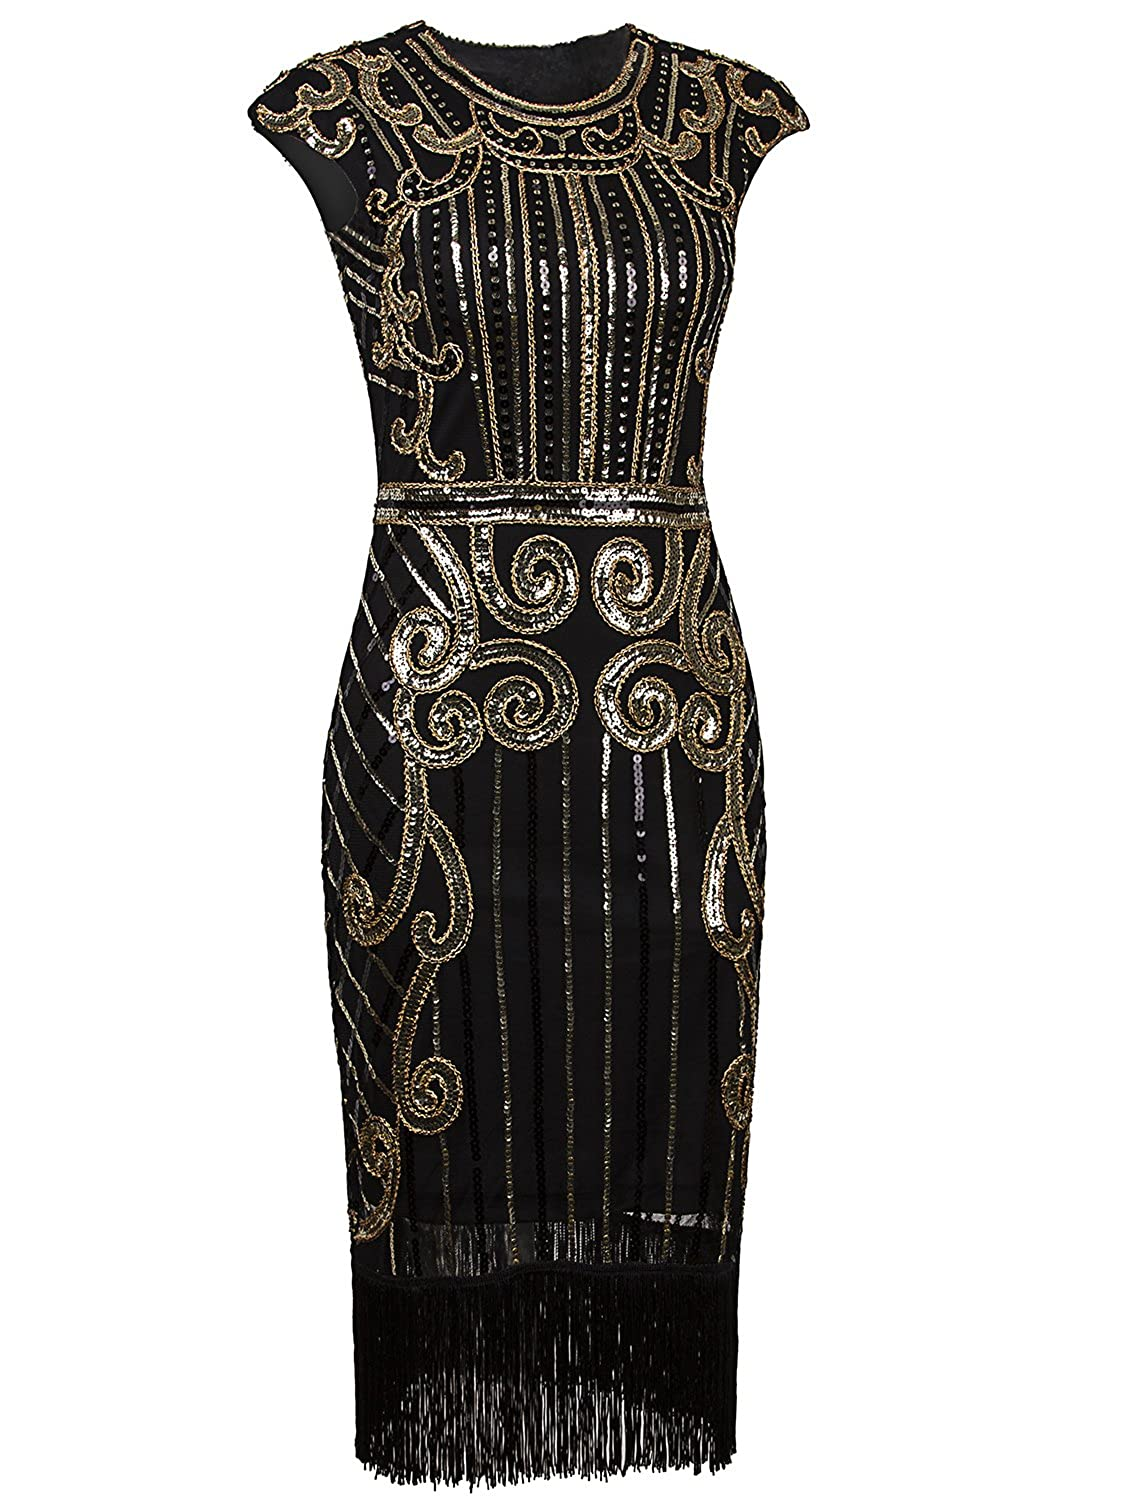 1920s Costumes: Flapper, Great Gatsby, Gangster Girl Vijiv 1920s Vintage Inspired Sequin Embellished Fringe Long Gatsby Flapper Dress $33.99 AT vintagedancer.com